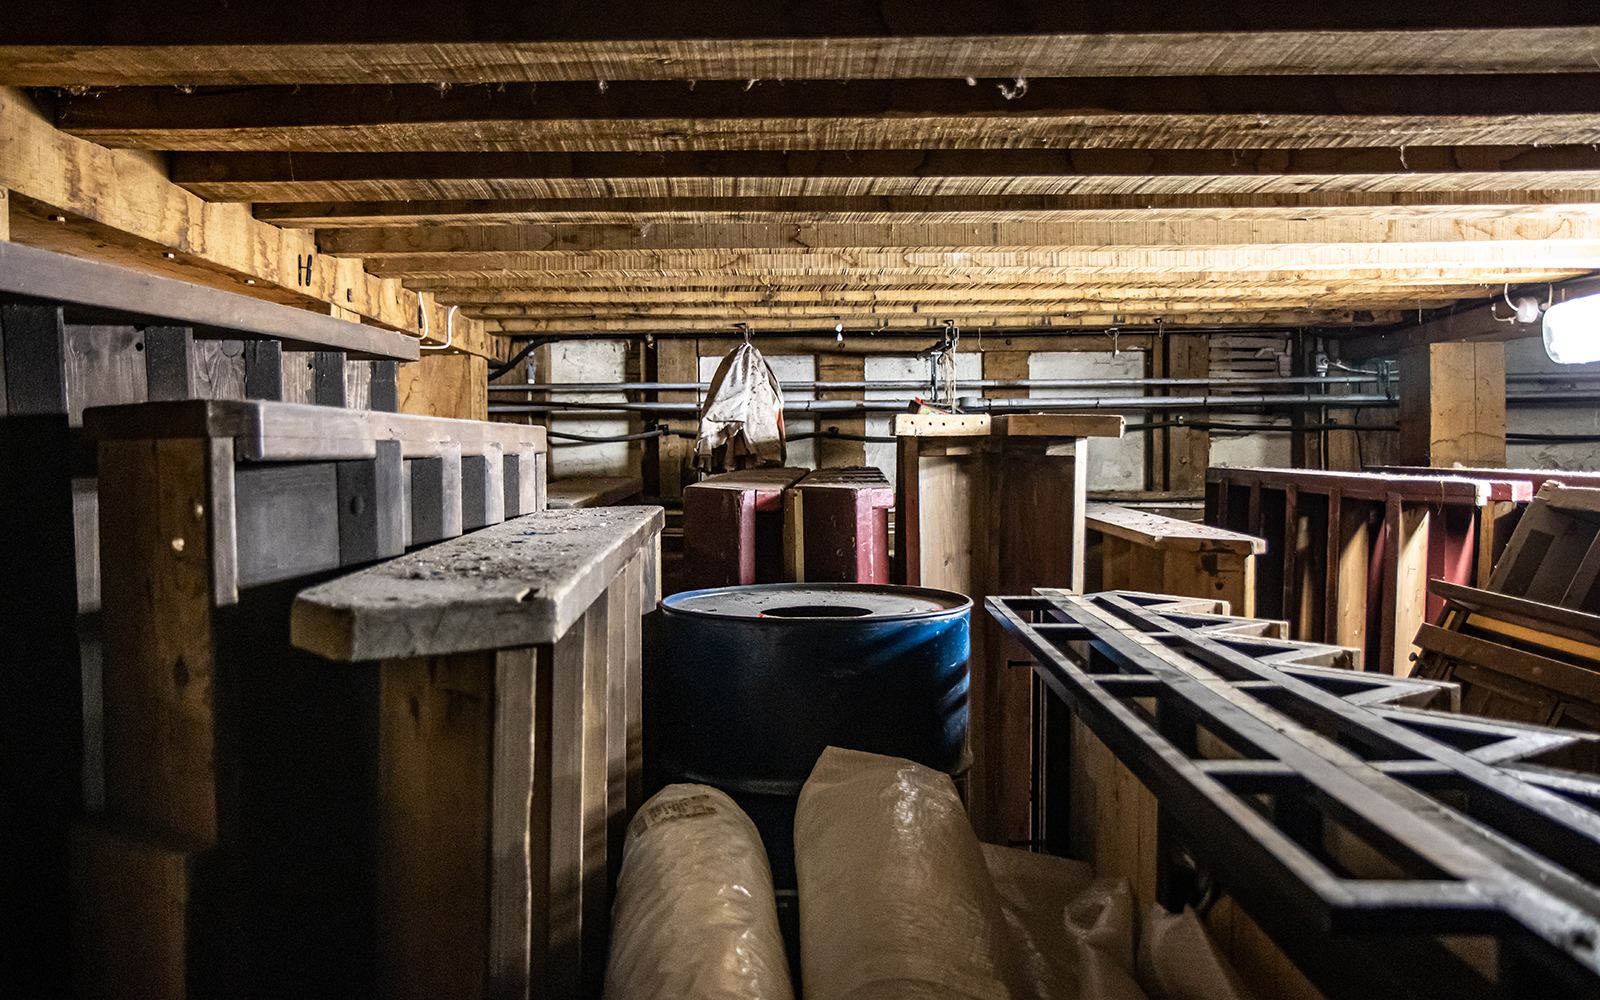 Items of wooden staging and barrels are stored in a basement room